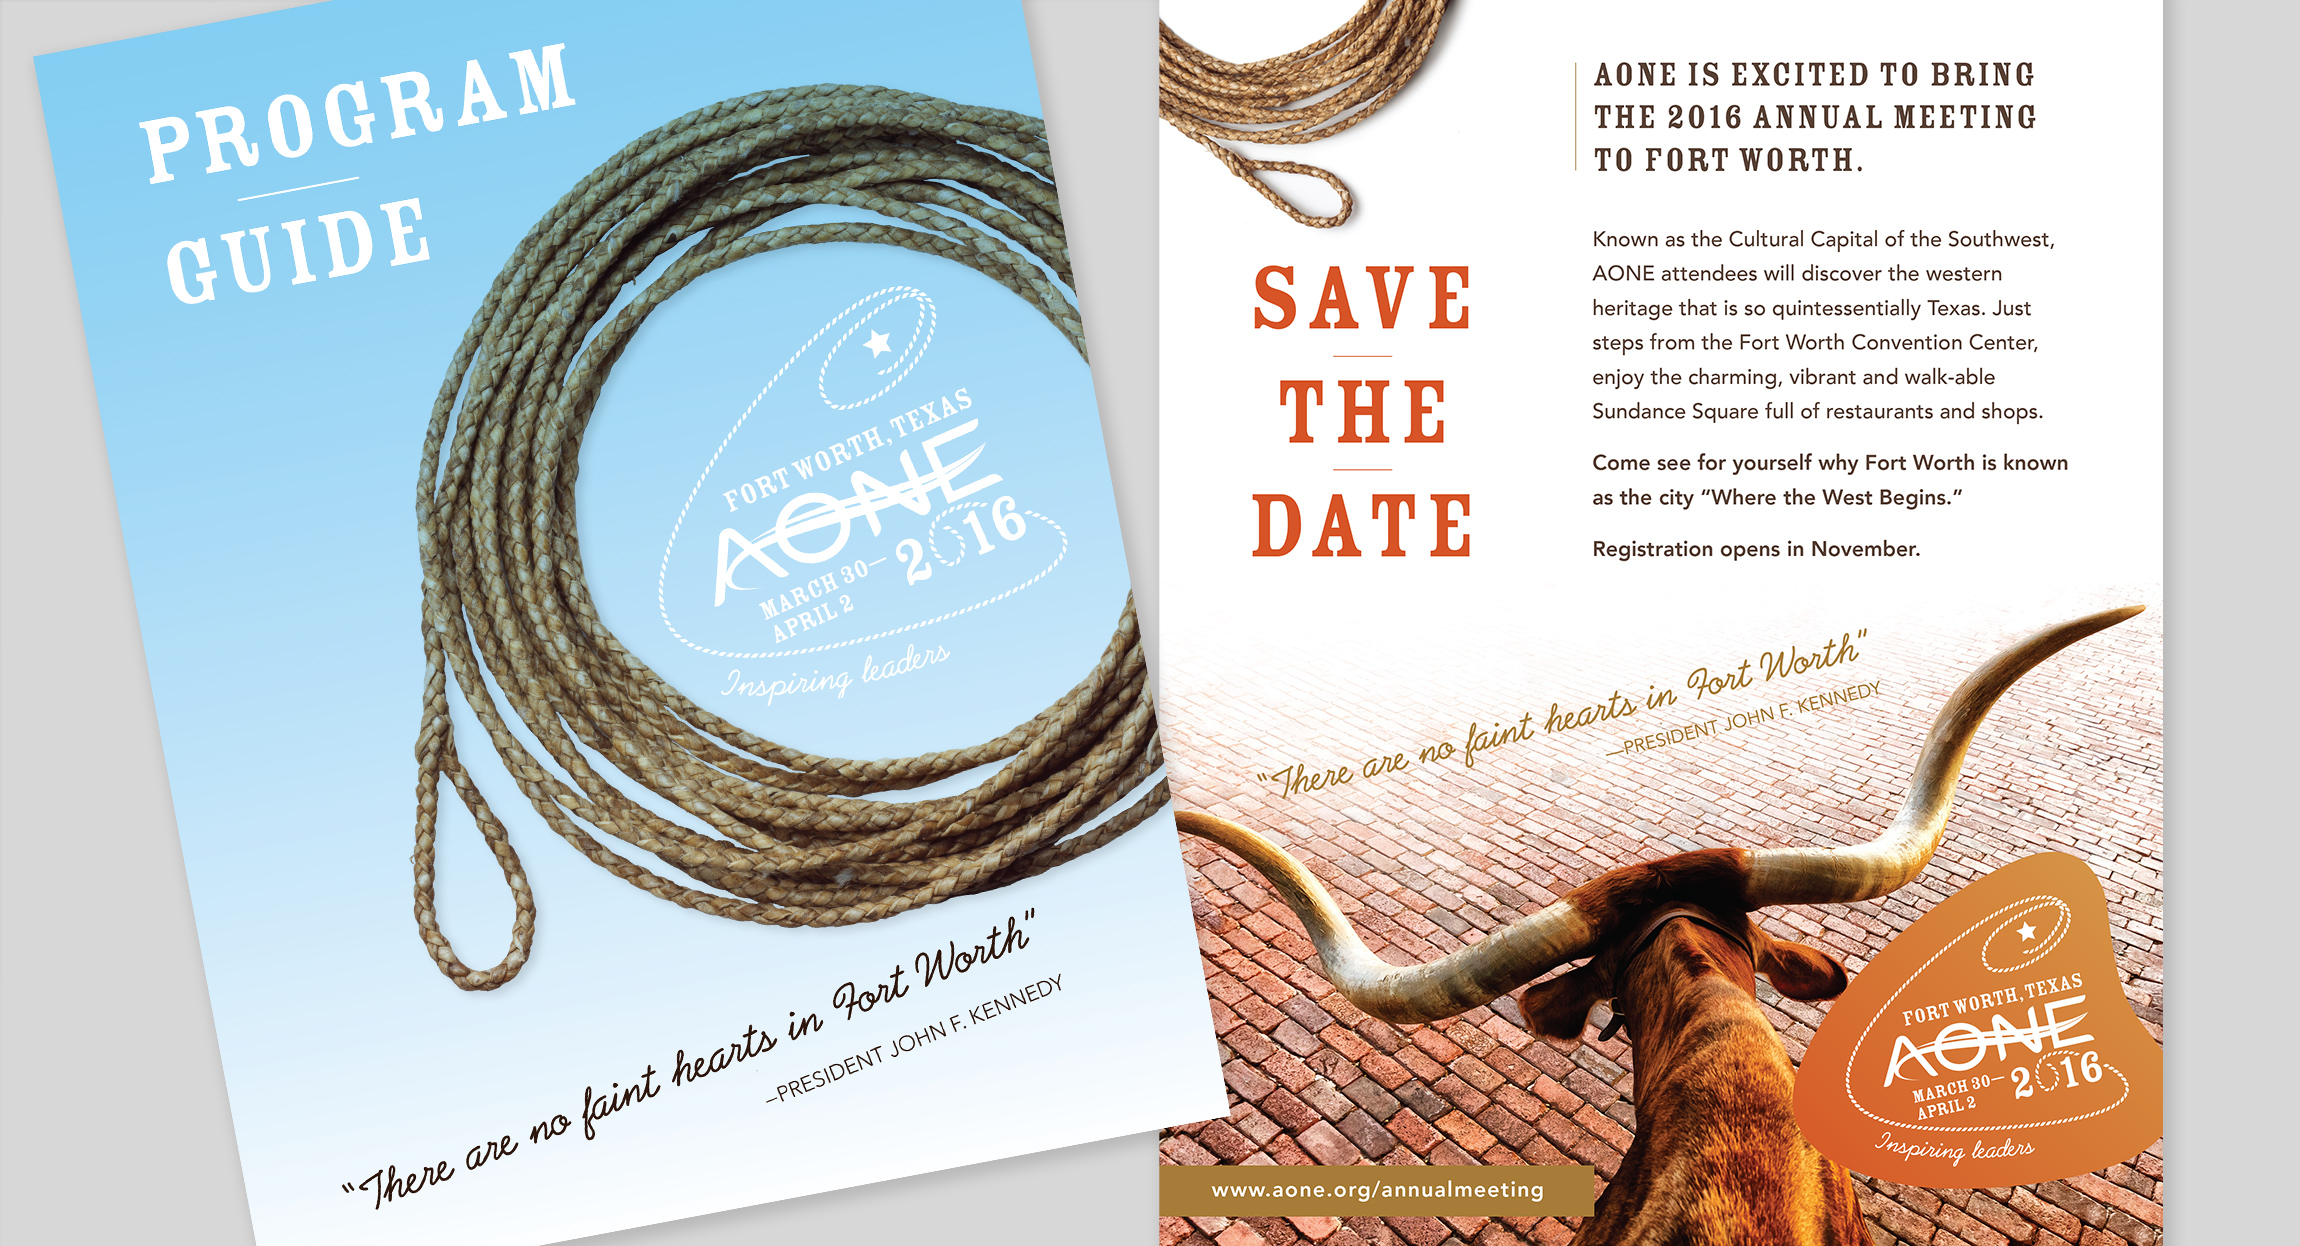 AONE 2016 Annual Conference Branding design by Hughes design|communications